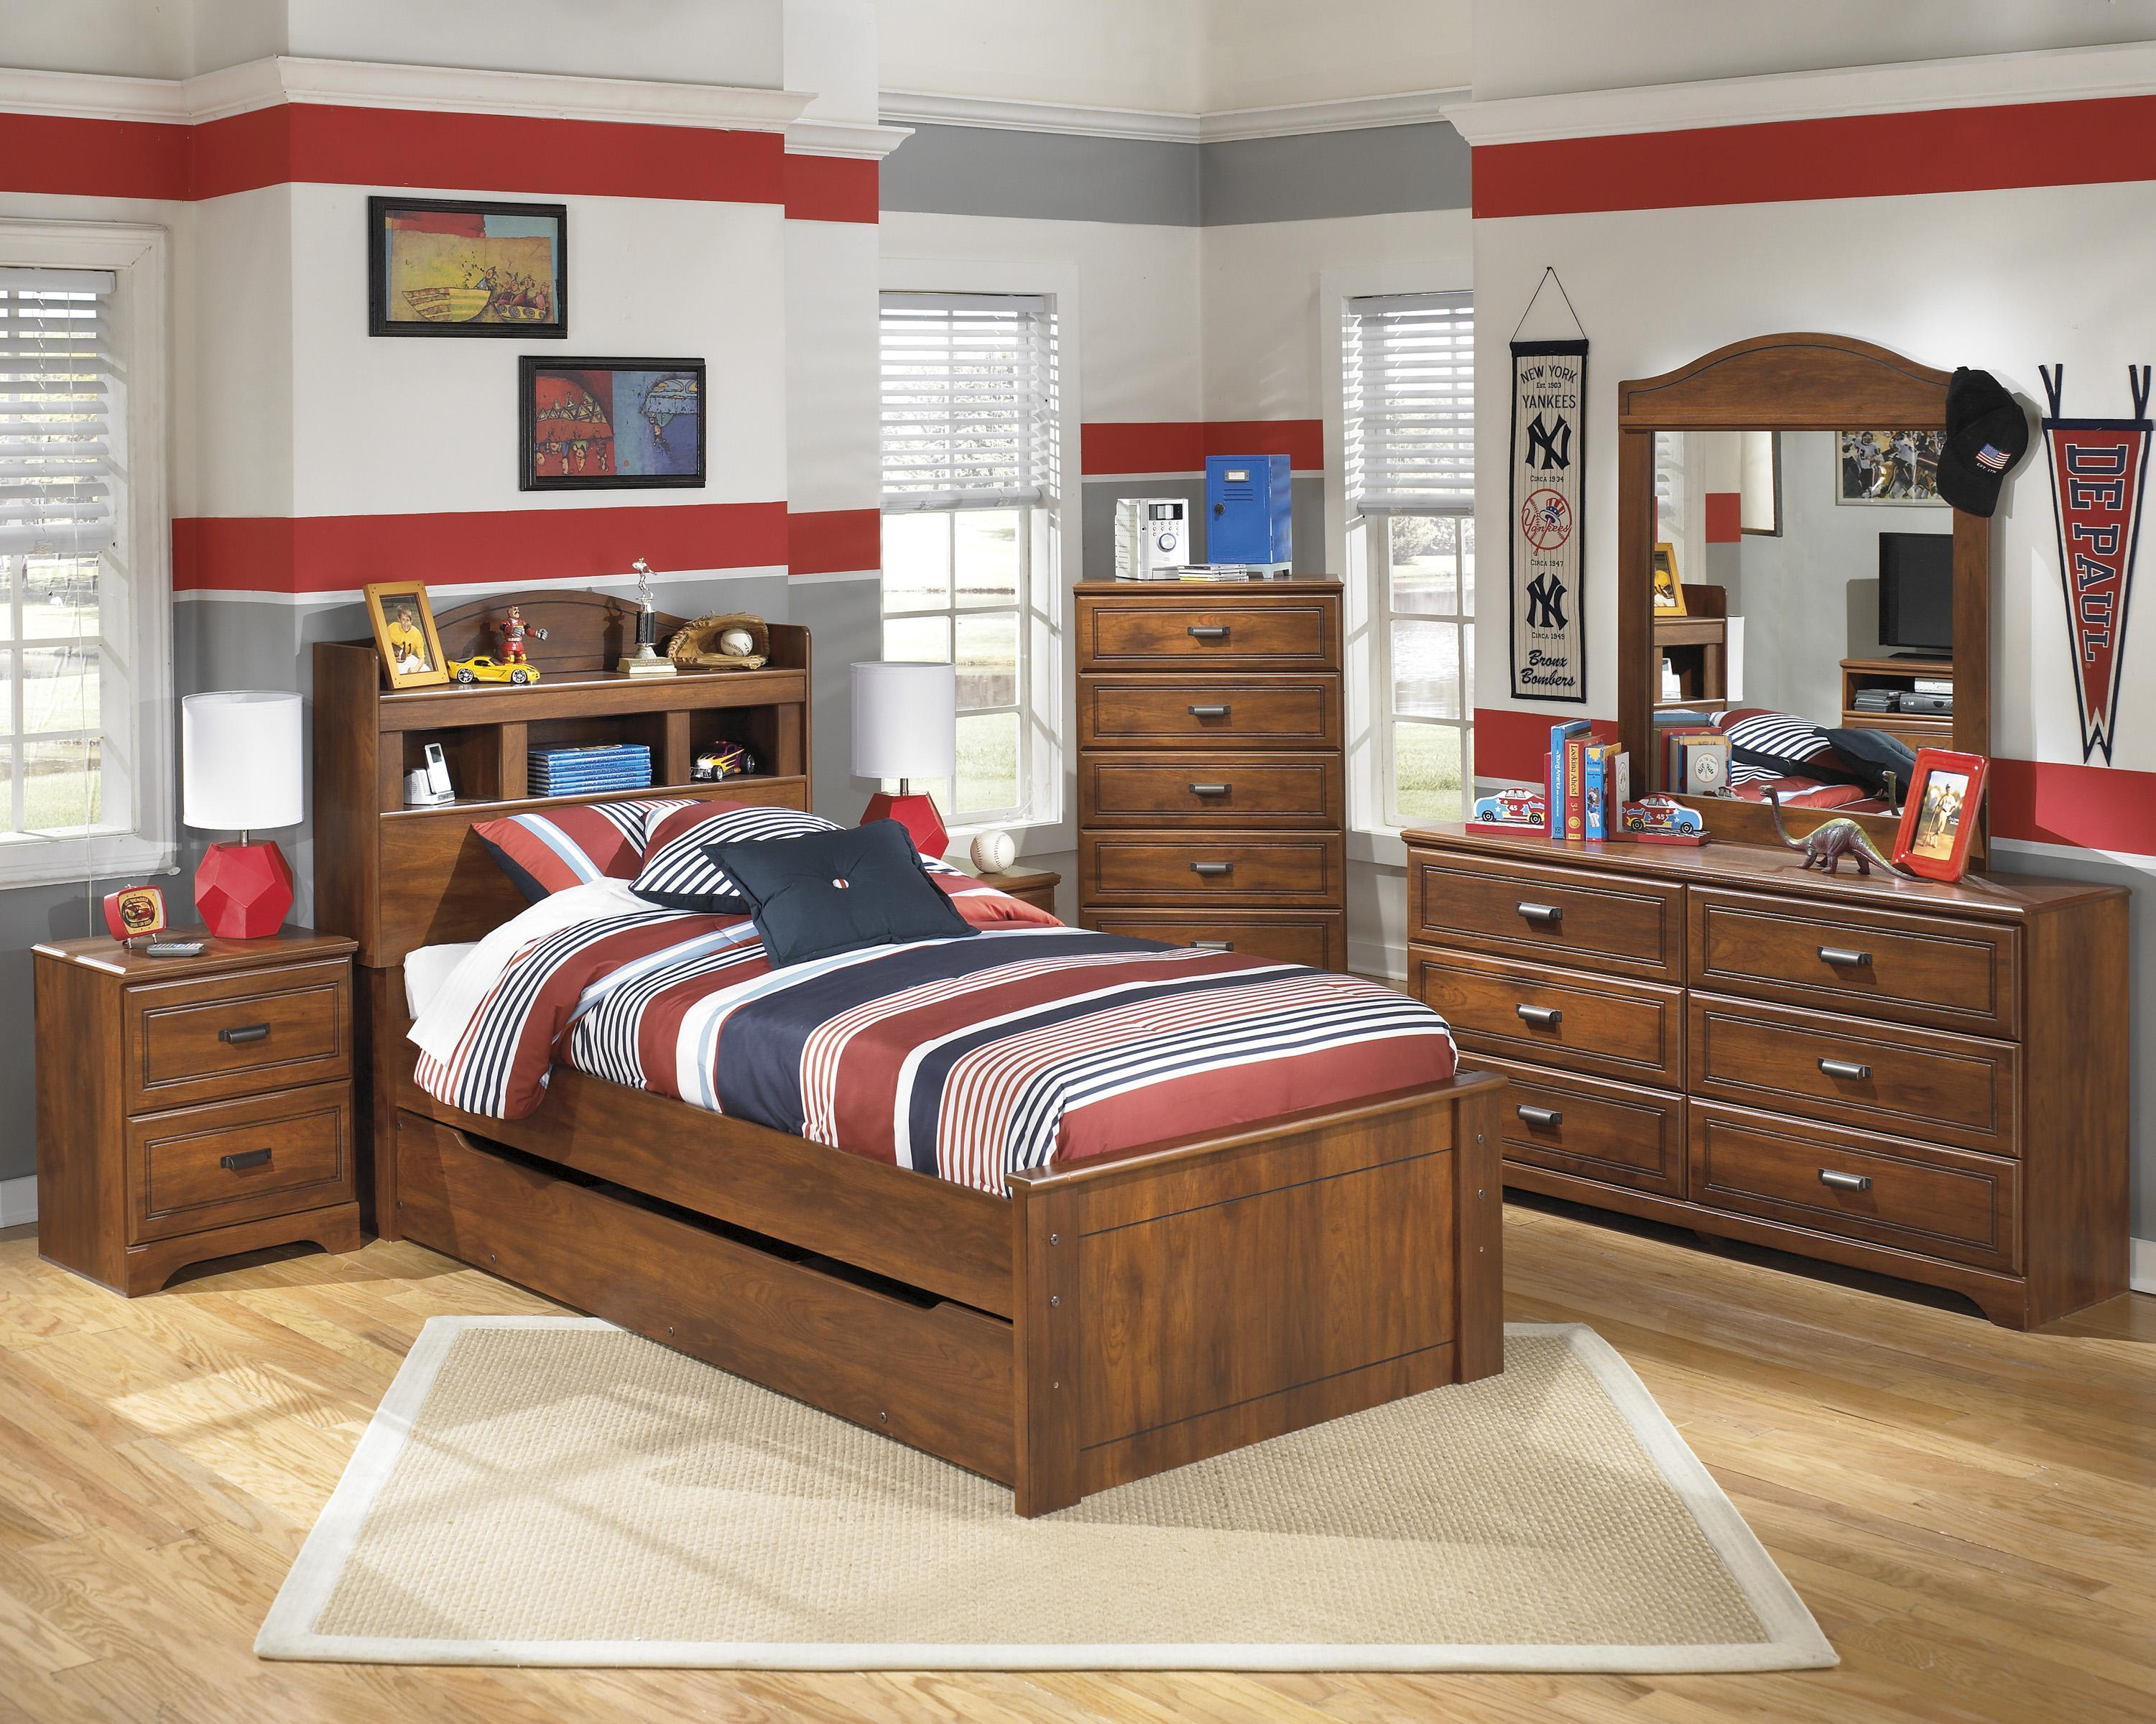 Barchan Twin Bedroom Group by Signature Design by Ashley at Houston's Yuma Furniture